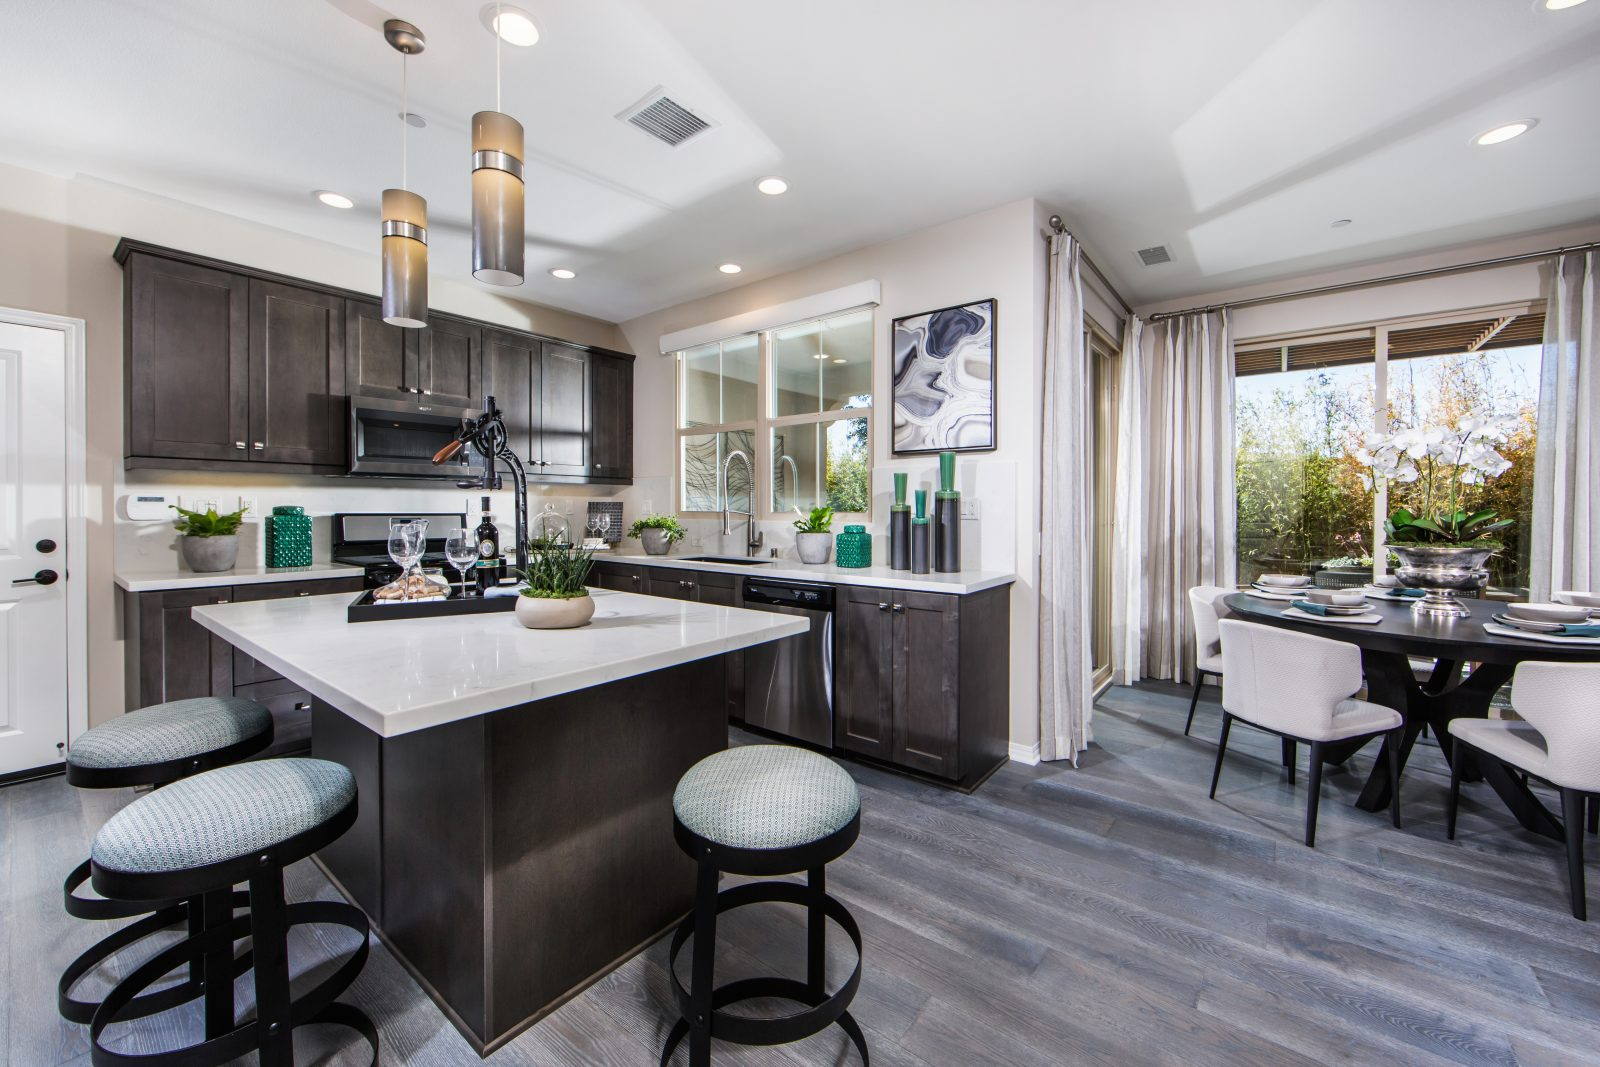 Orange County new homes for sale in Irvine - Kitchen